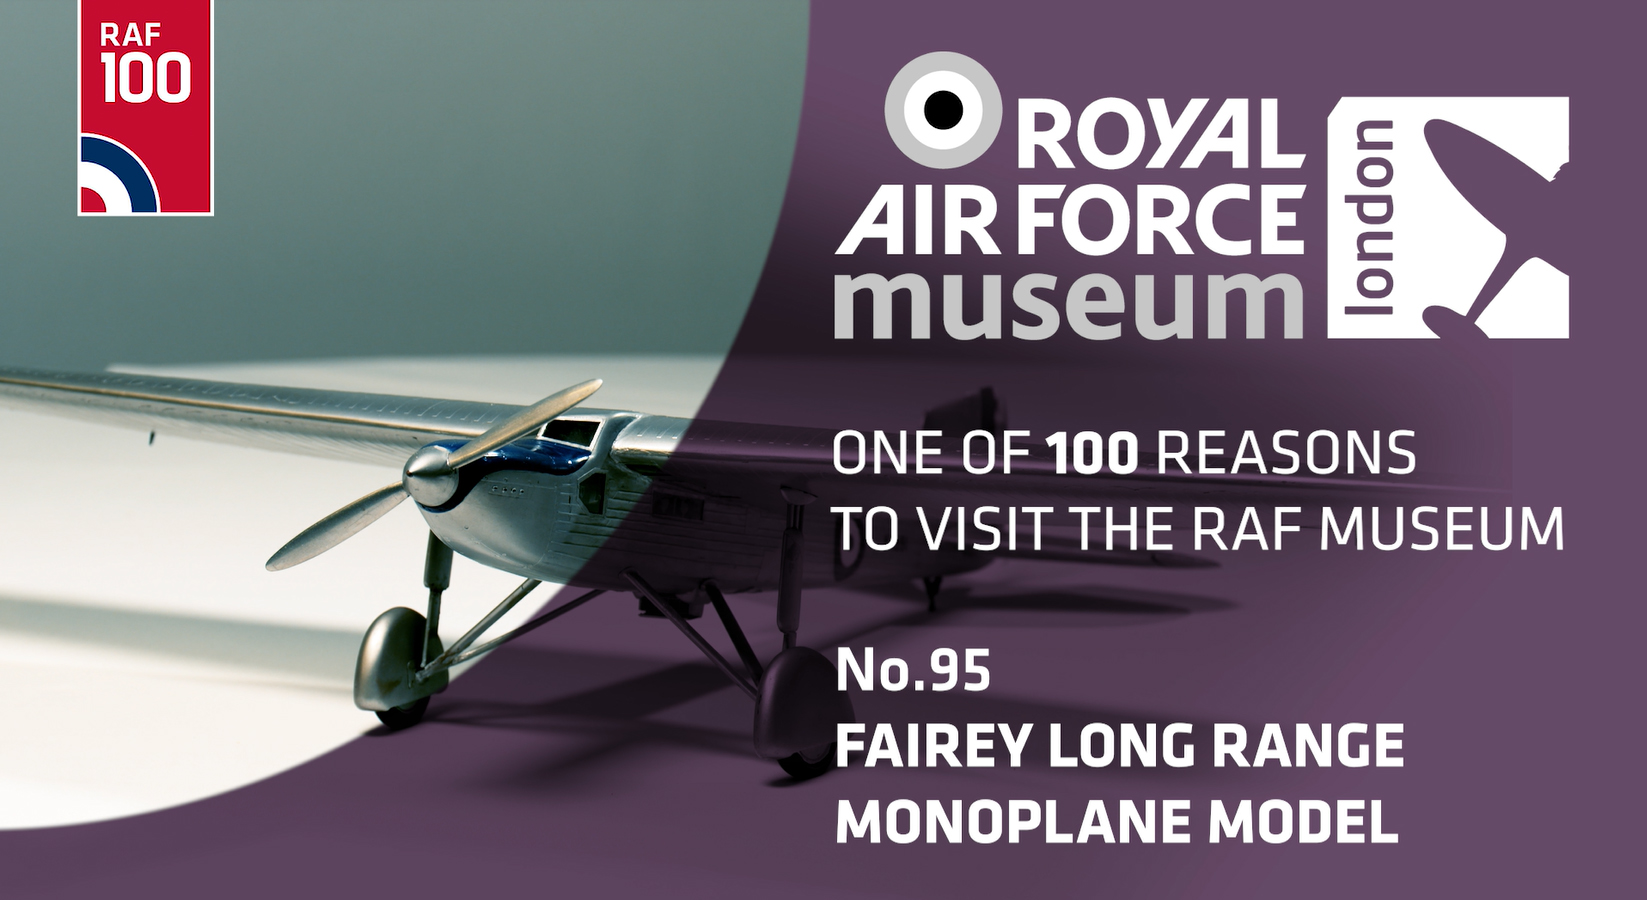 Fairey Long Range Monoplane - one of 100 reasons to visit the RAF Museum